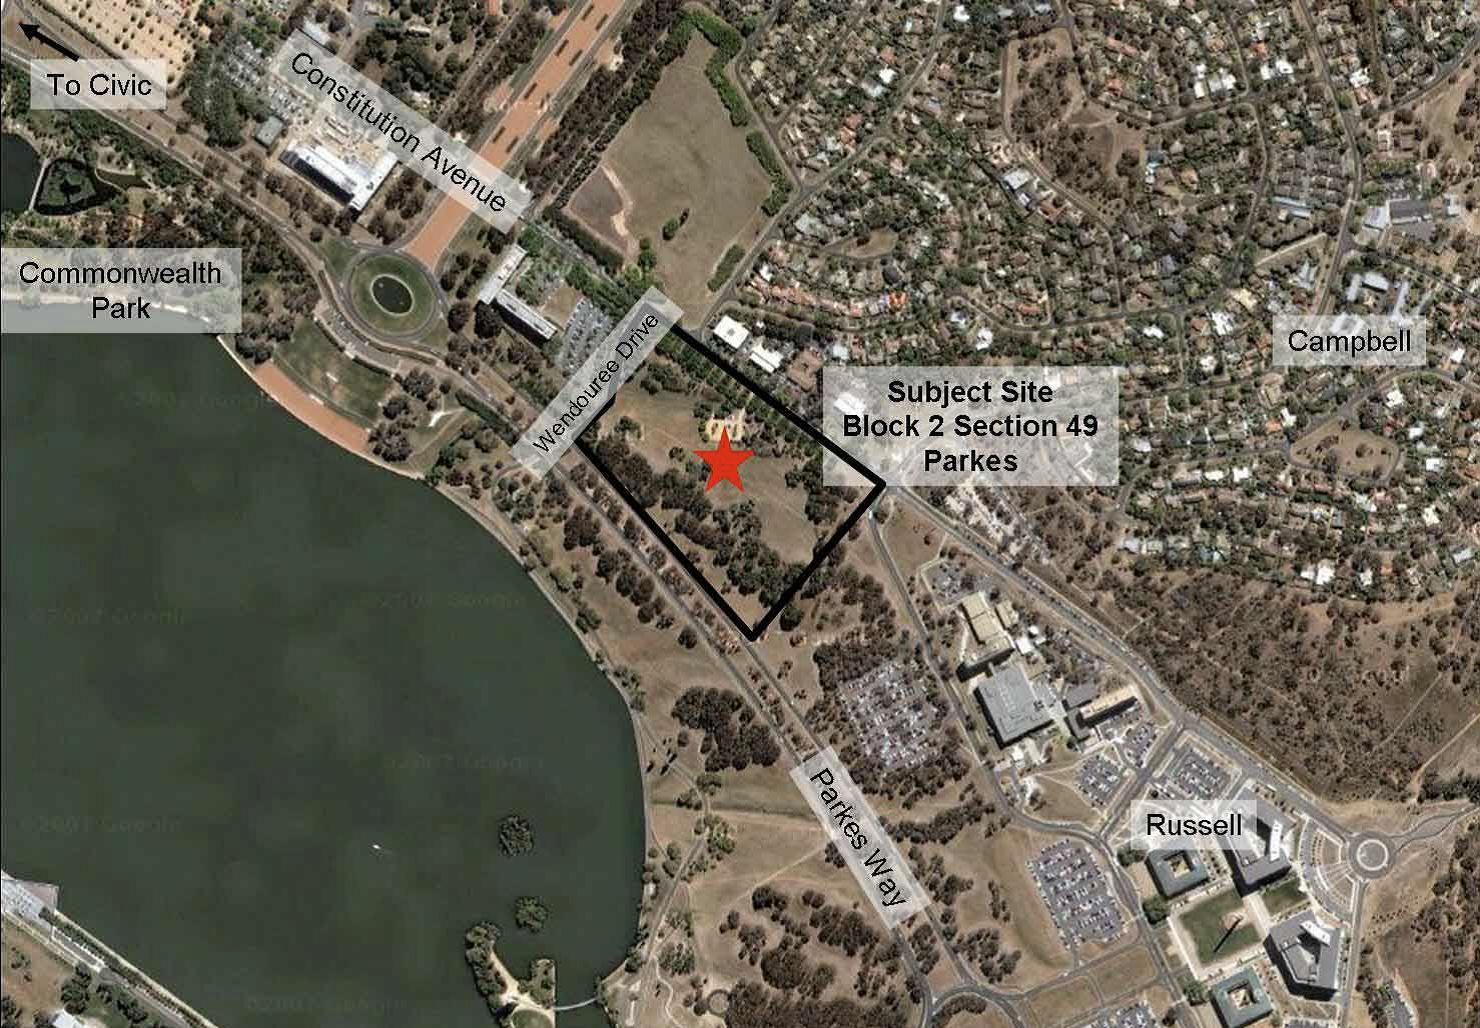 Figure 1: photo showing the location of the new ASIO Central Office building (indicated by the black outline), the Russell Security Precinct, and the nearby suburb of Campbell